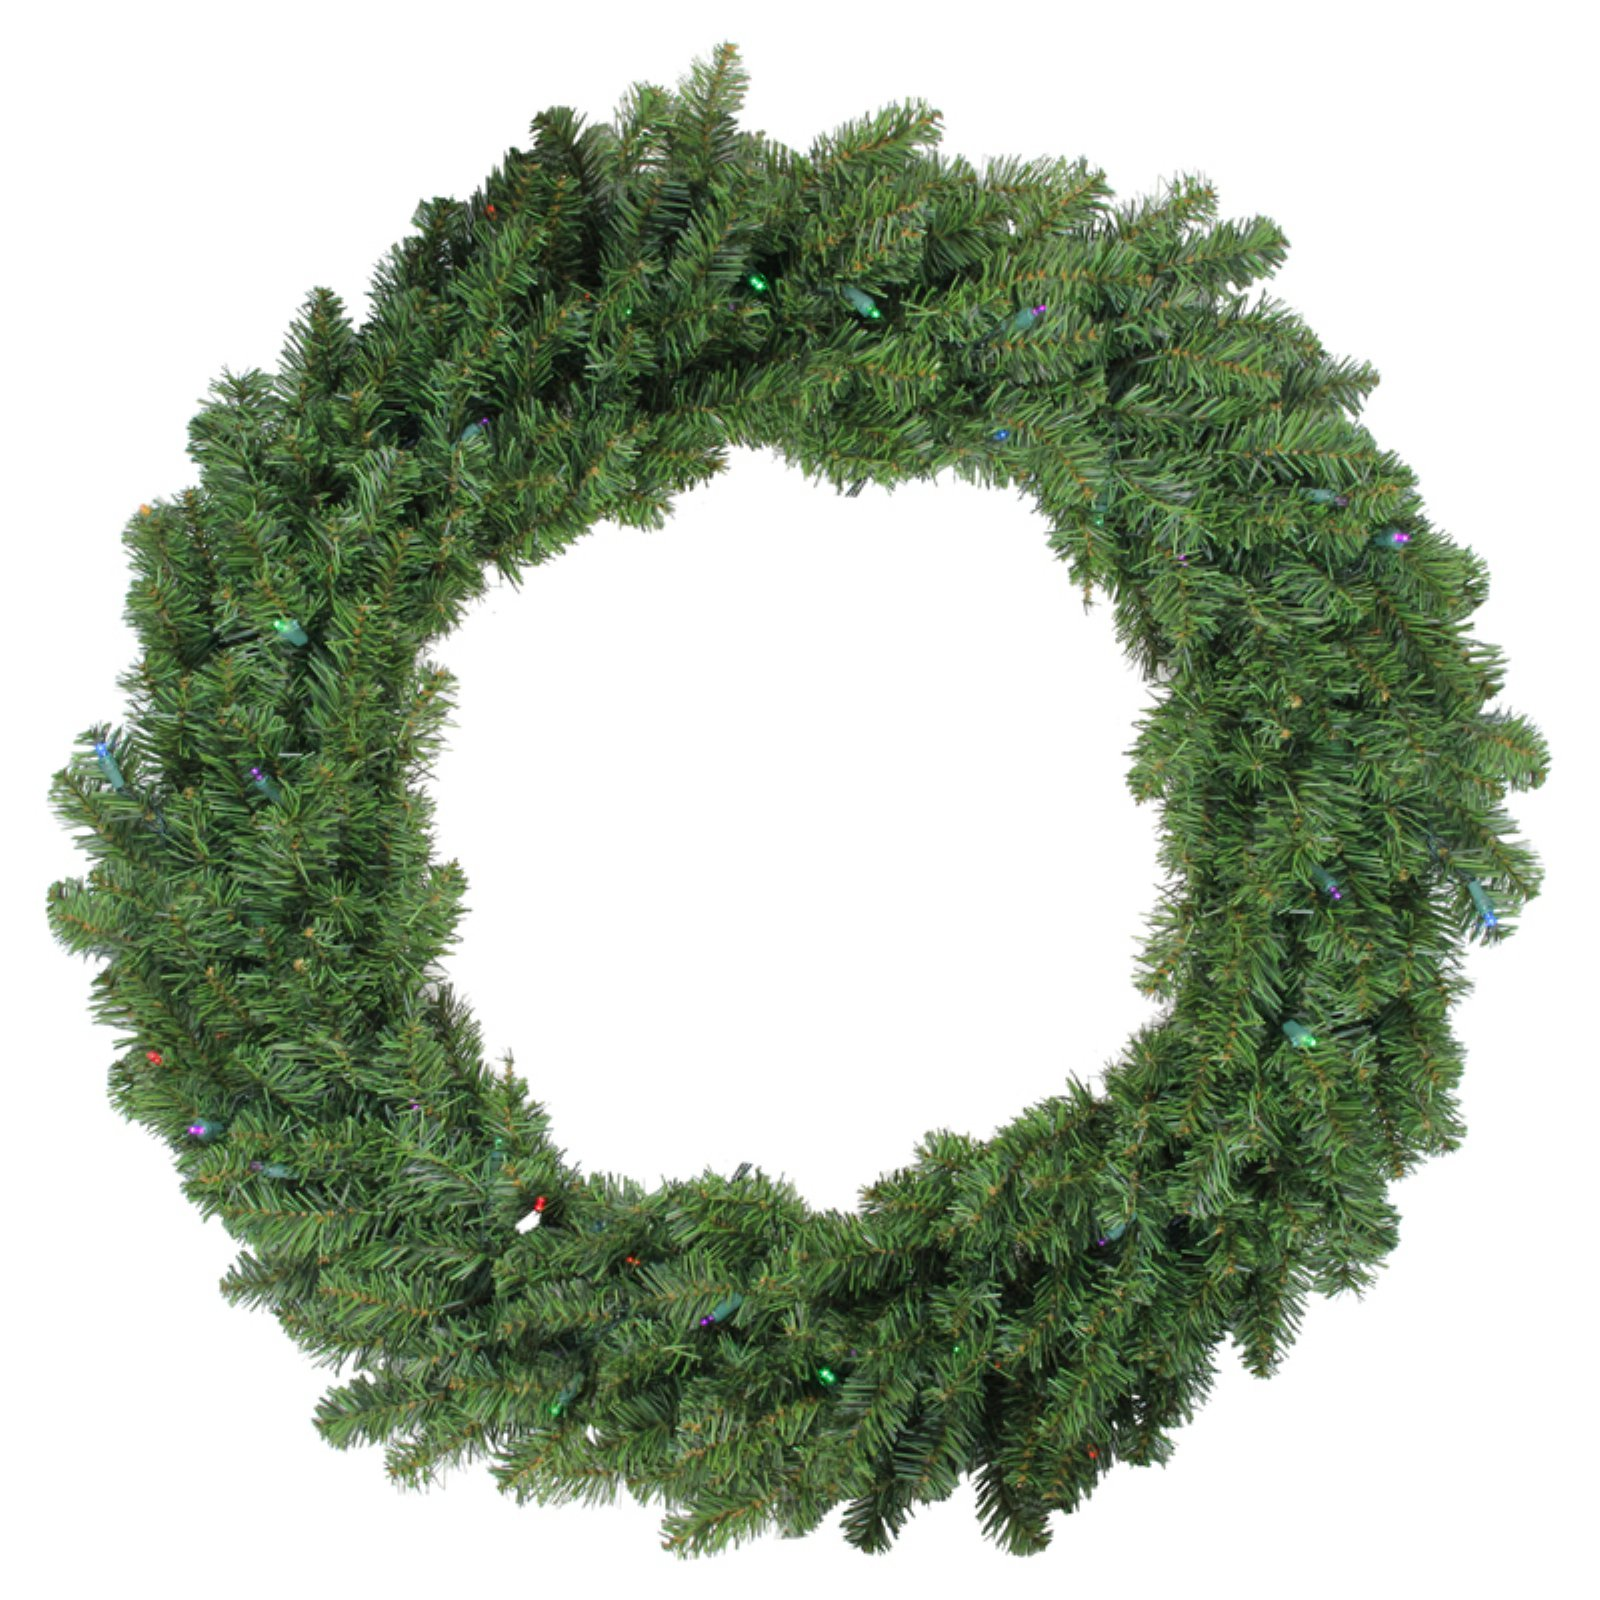 Northlight 36 In Pre Lit Battery Operated Led Canadian Pine Christmas Wreath Artificial Christmas Wreaths Christmas Wreaths Spring Flower Wreath